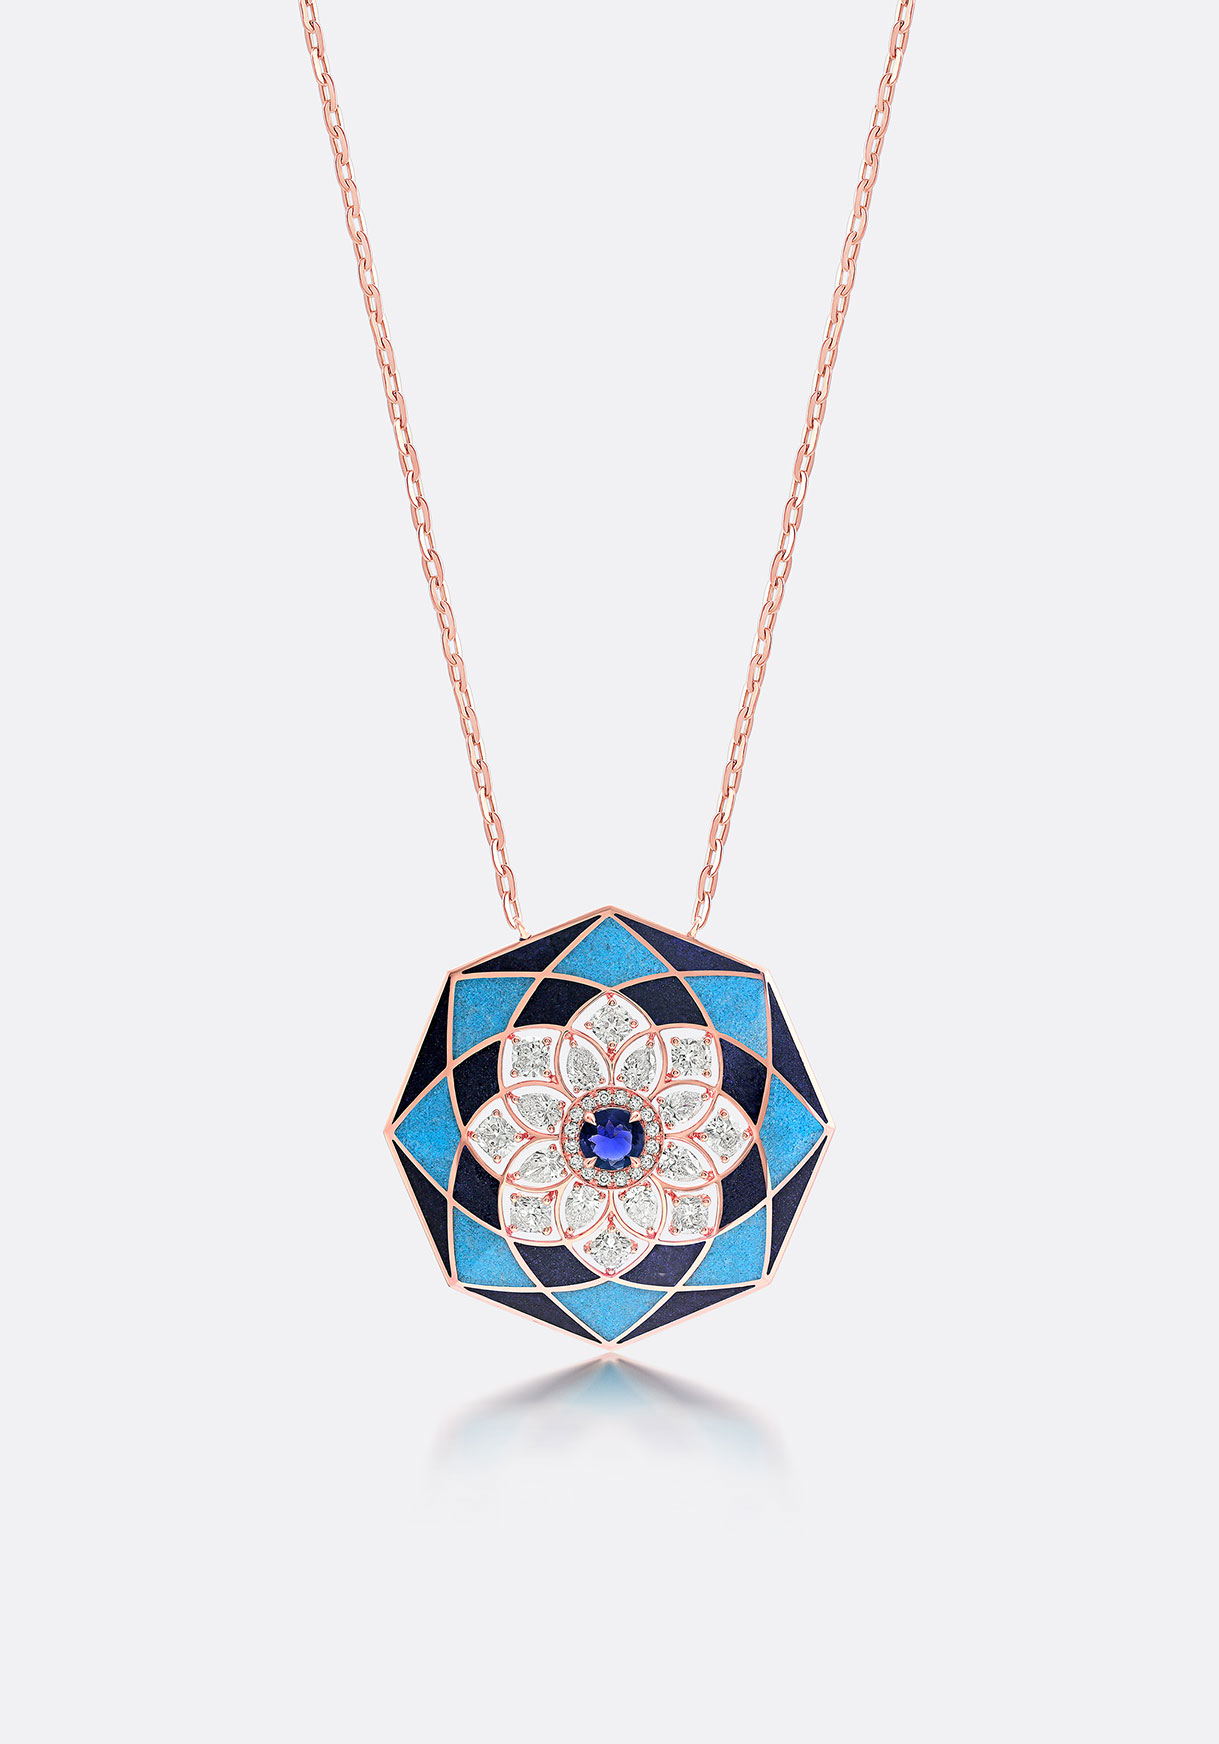 Pendant - Coloured stones are inlaid in a kaleidoscopic pattern.